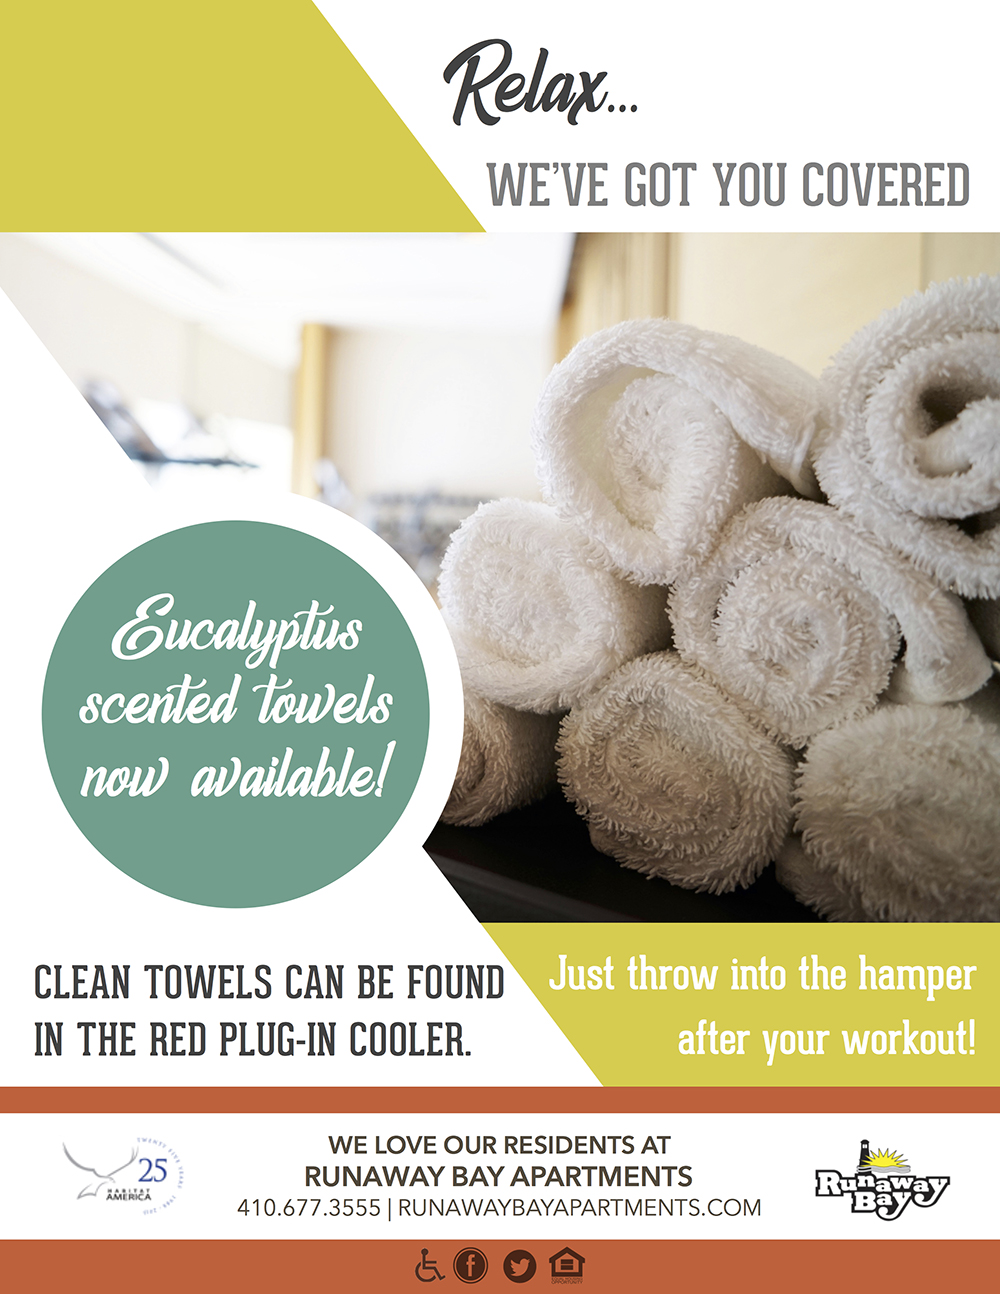 Runaway Bay Eucalyptus Towels in Fitness Center